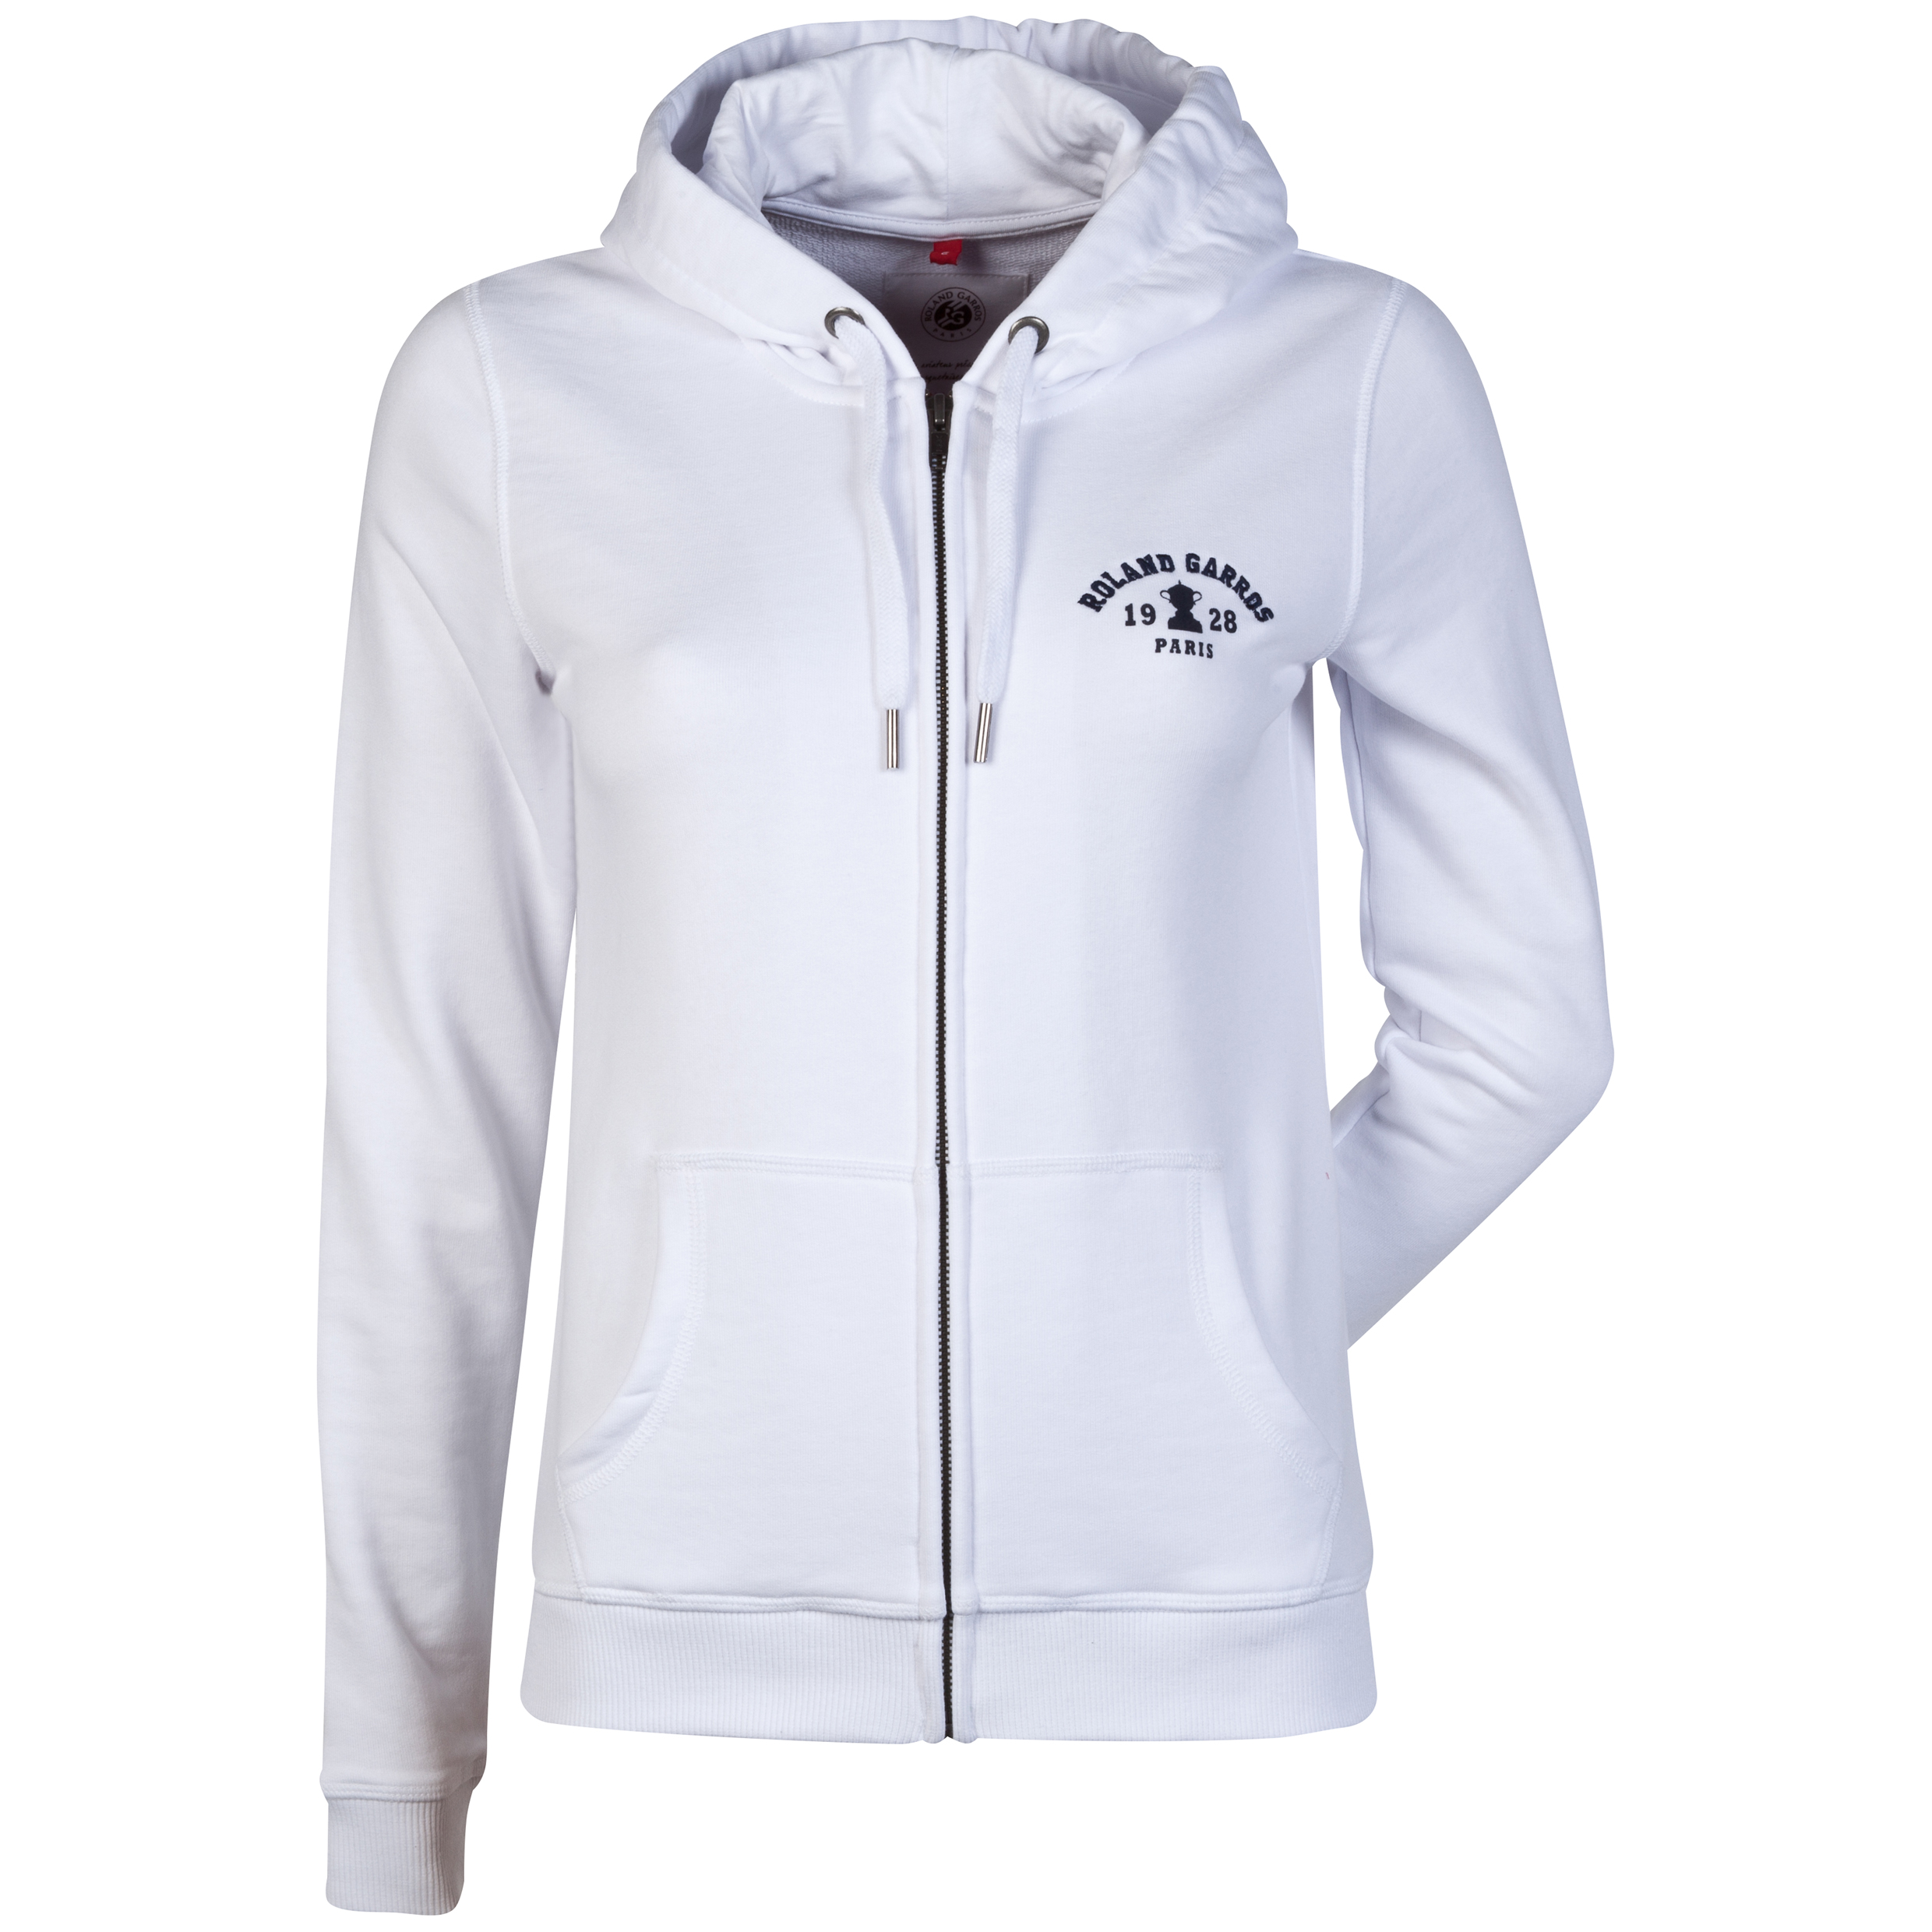 Roland-Garros Barueri Hooded Zip Top - Womens White